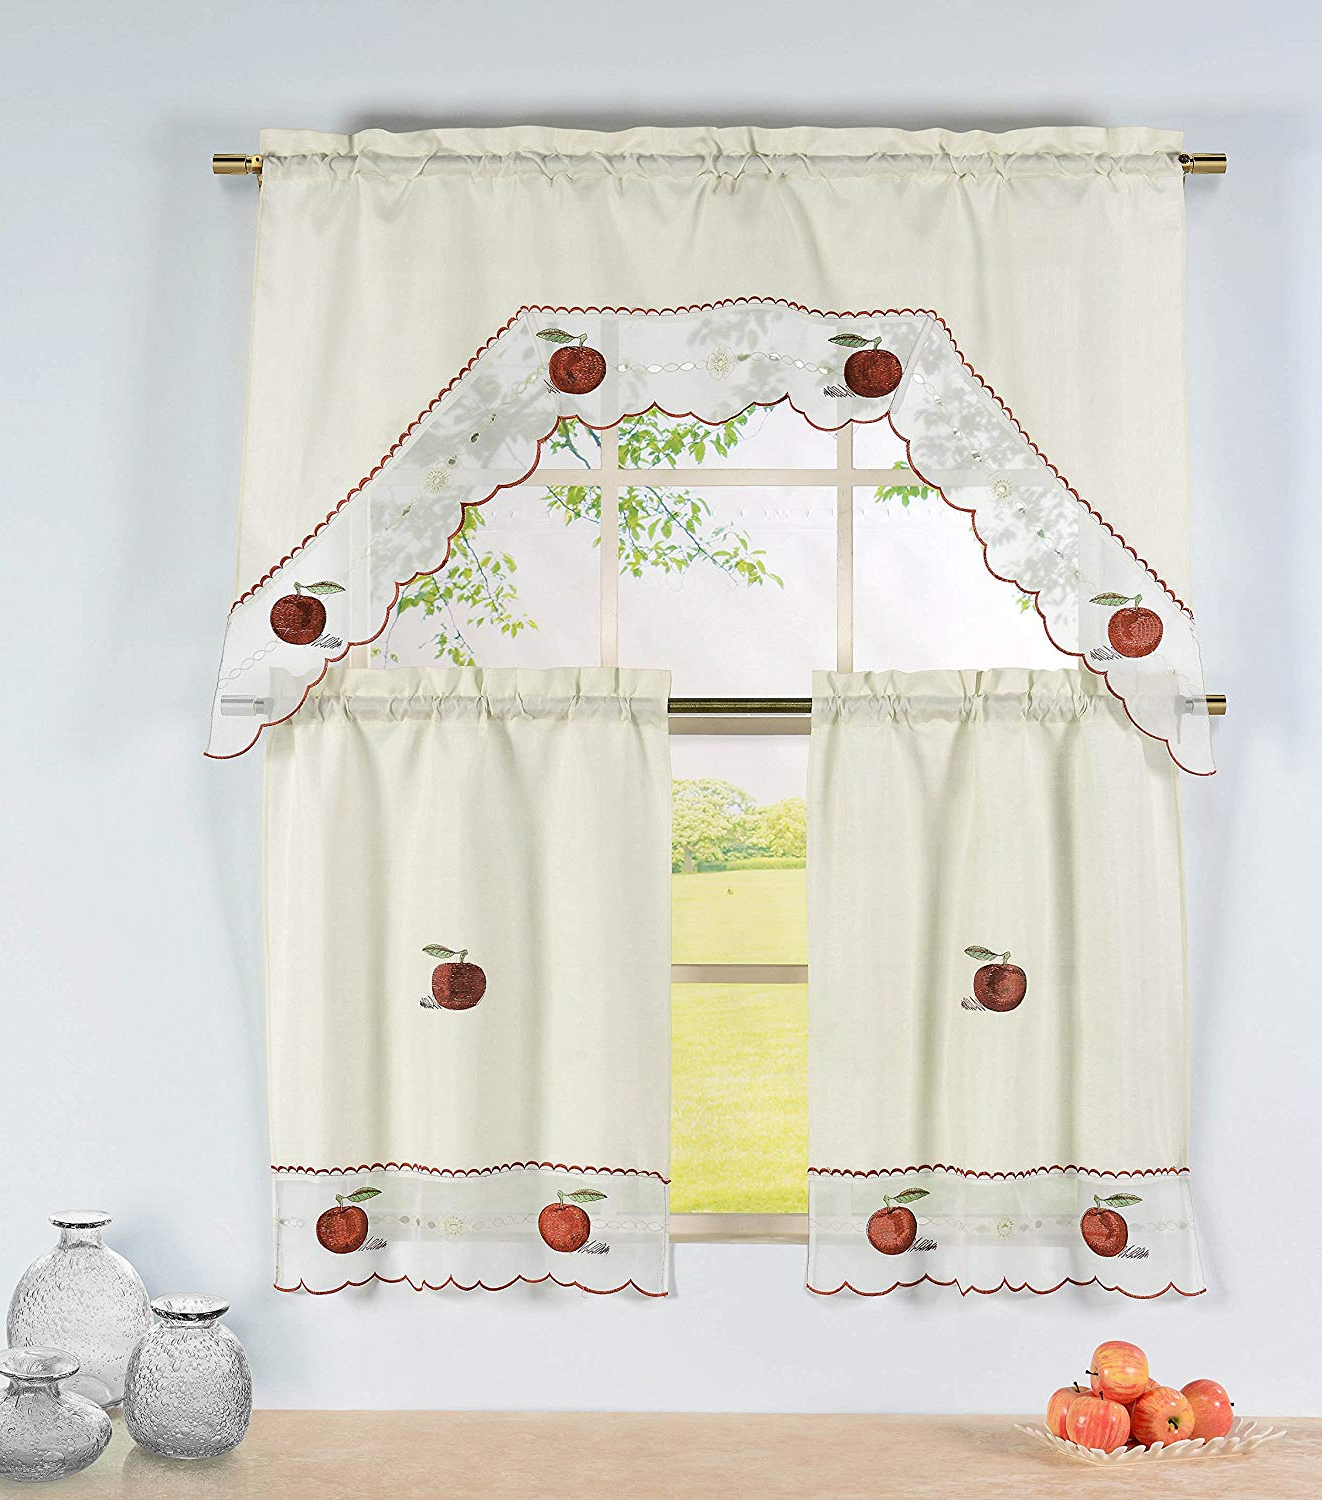 Well Liked Window Elements Embroidered 3 Piece Kitchen Tier And Valance 60 X 72 Set With Scalloped Border, Apple Time Within Red Delicious Apple 3 Piece Curtain Tiers (View 6 of 20)